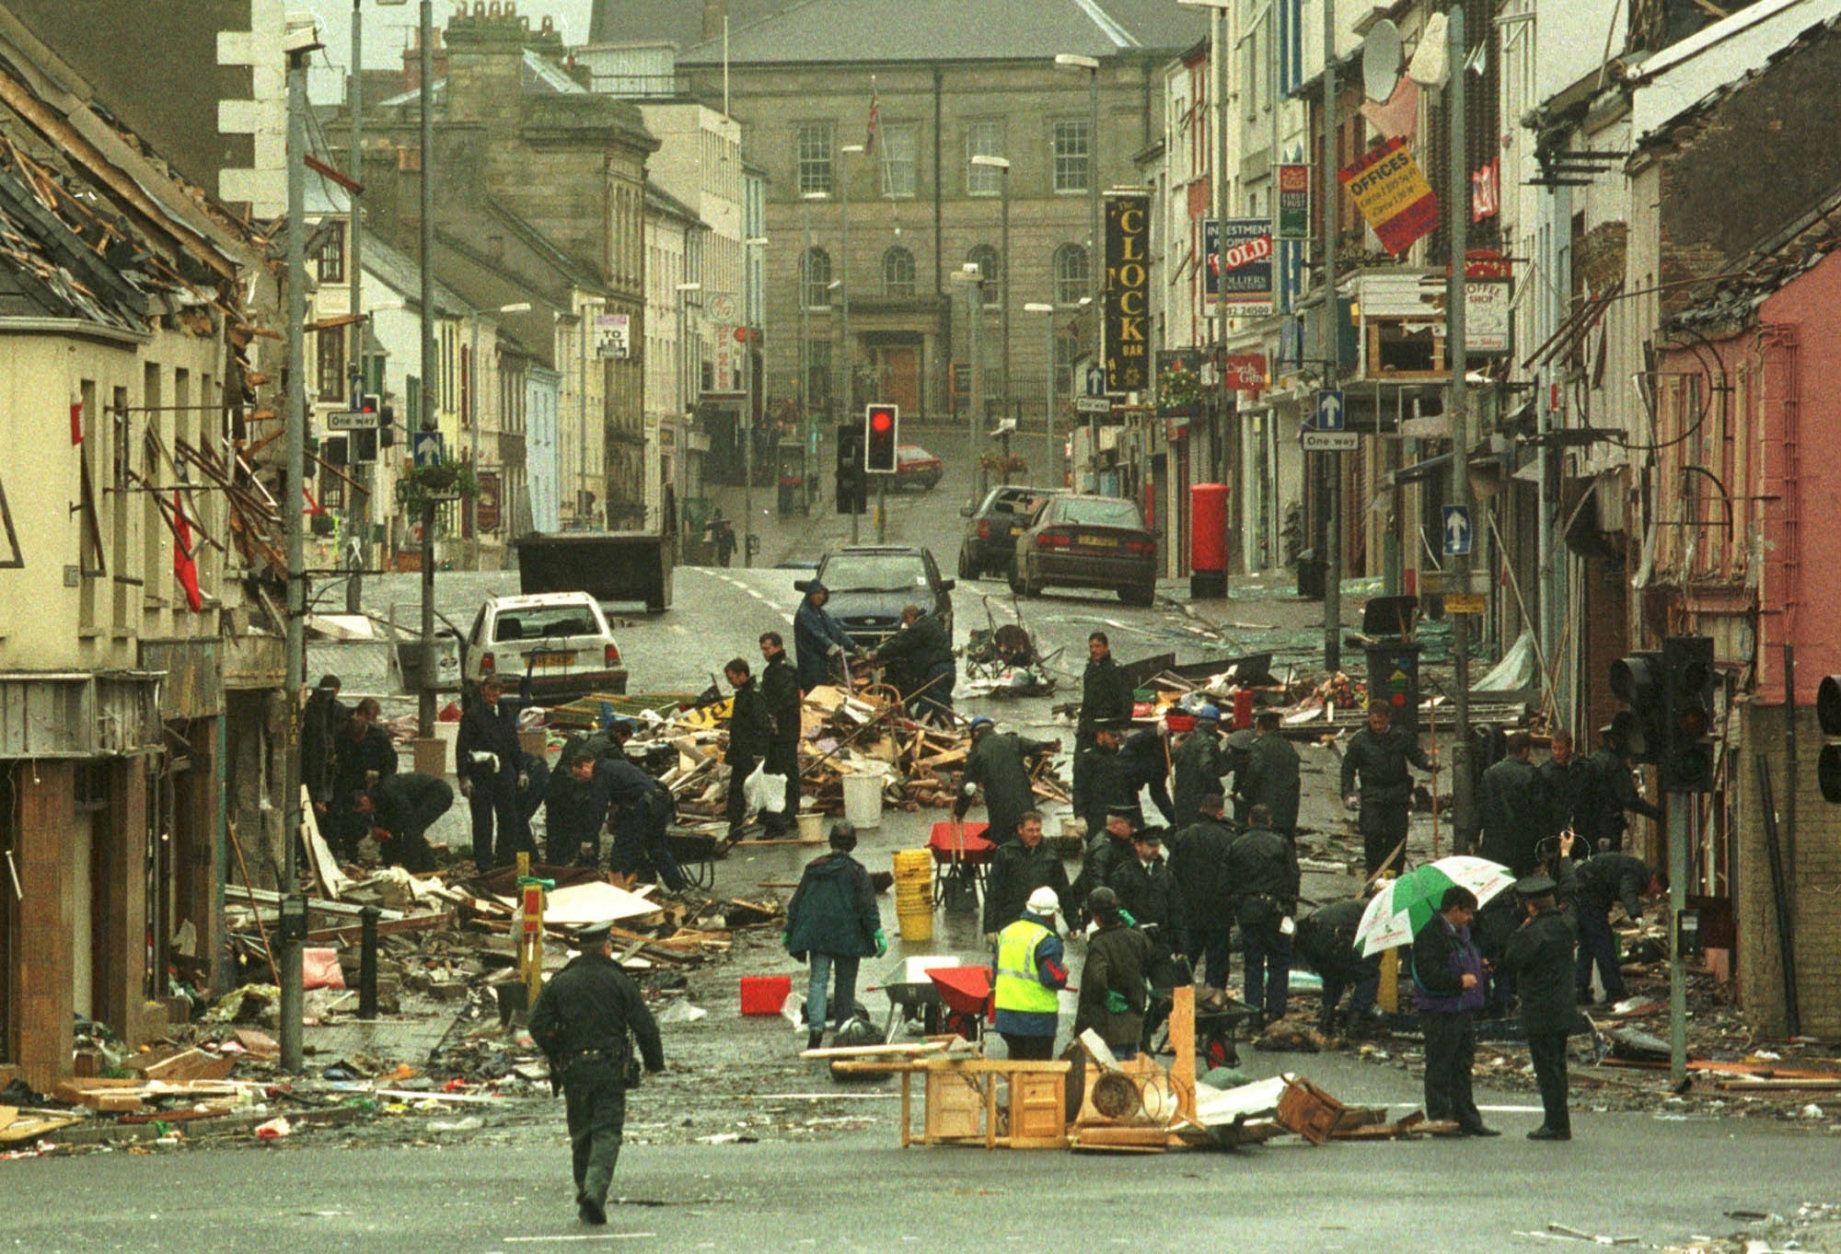 RUC officers look at the debris Sunday, August 16, 1998, following yesterday's bomb in Omagh town centre. The bomb exploded Saturday afternoon killing 28 people and injuring a further 220. (AP Photo/Alastair Grant).